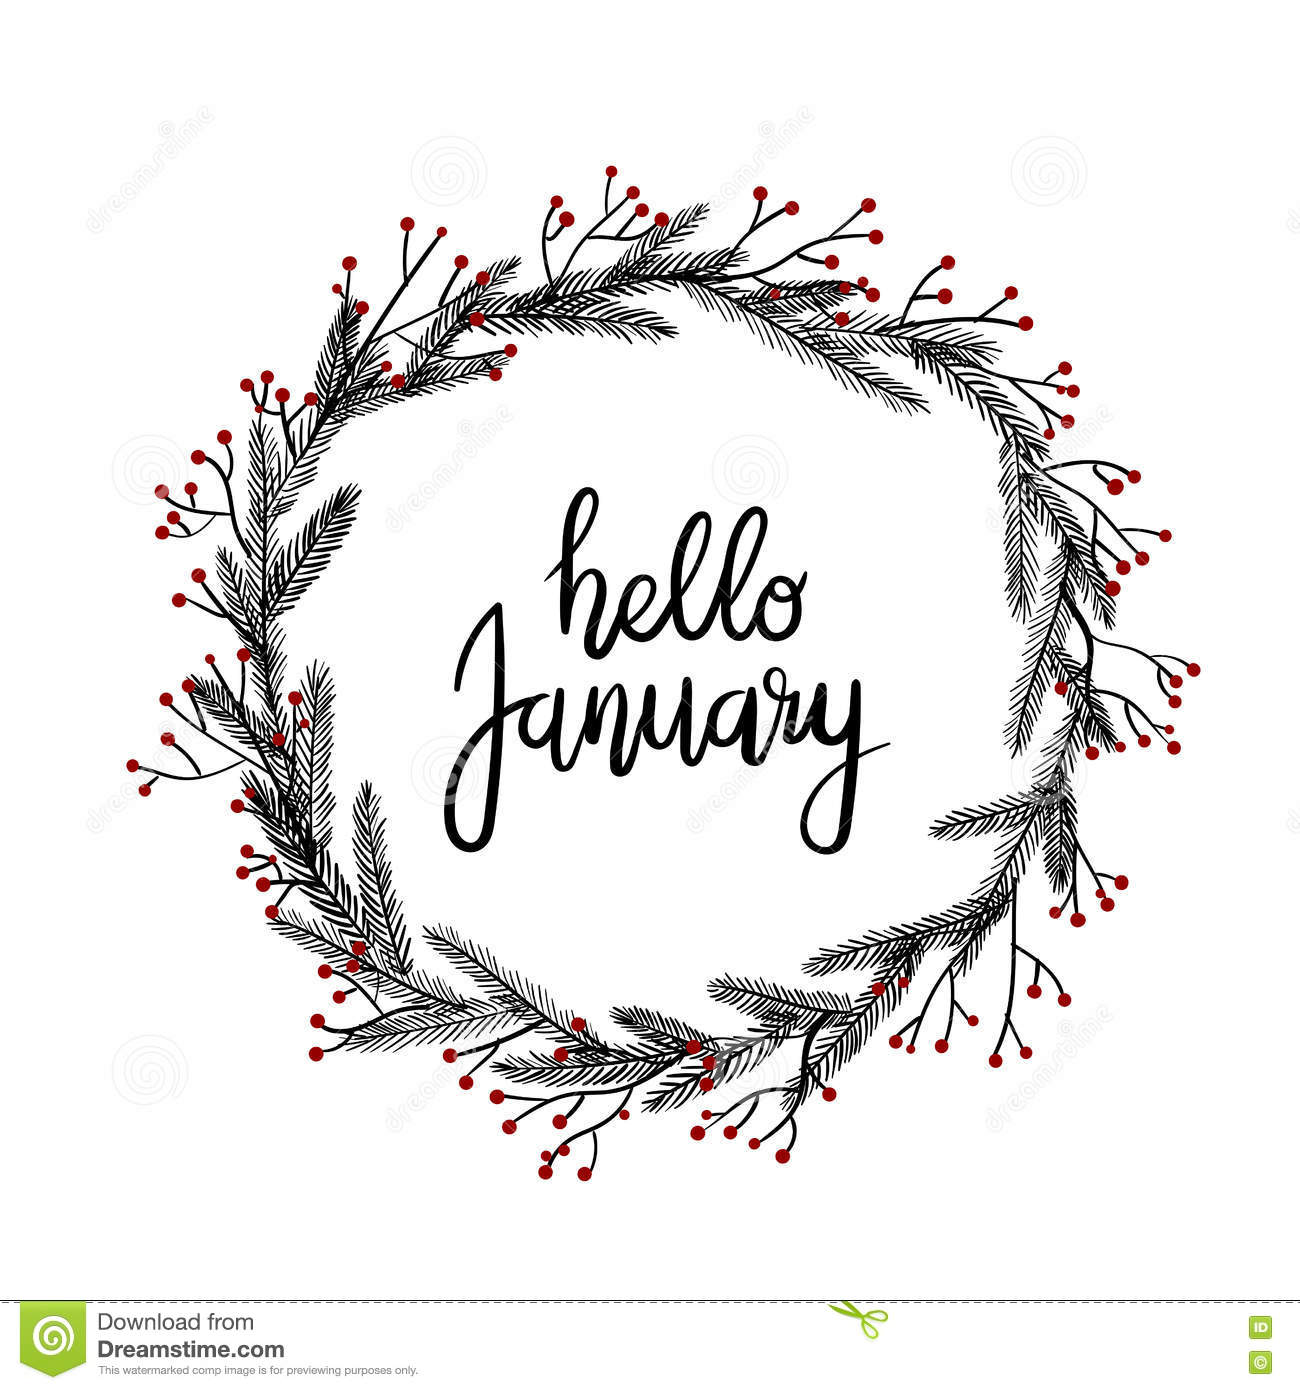 Hello january hand lettering greeting card modern Images of calligraphy